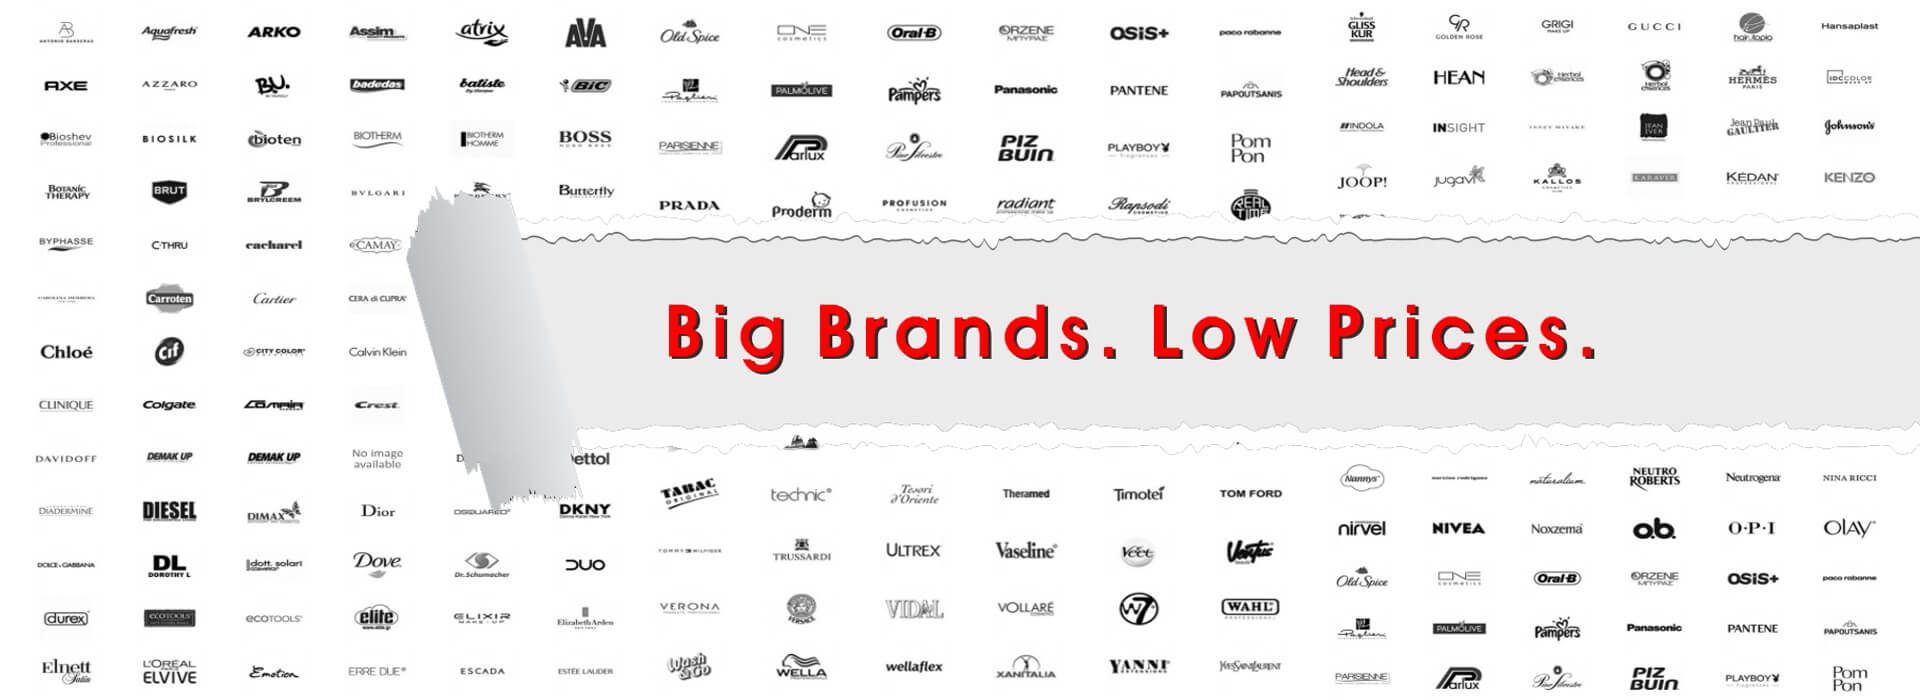 Big Brands Low Prices